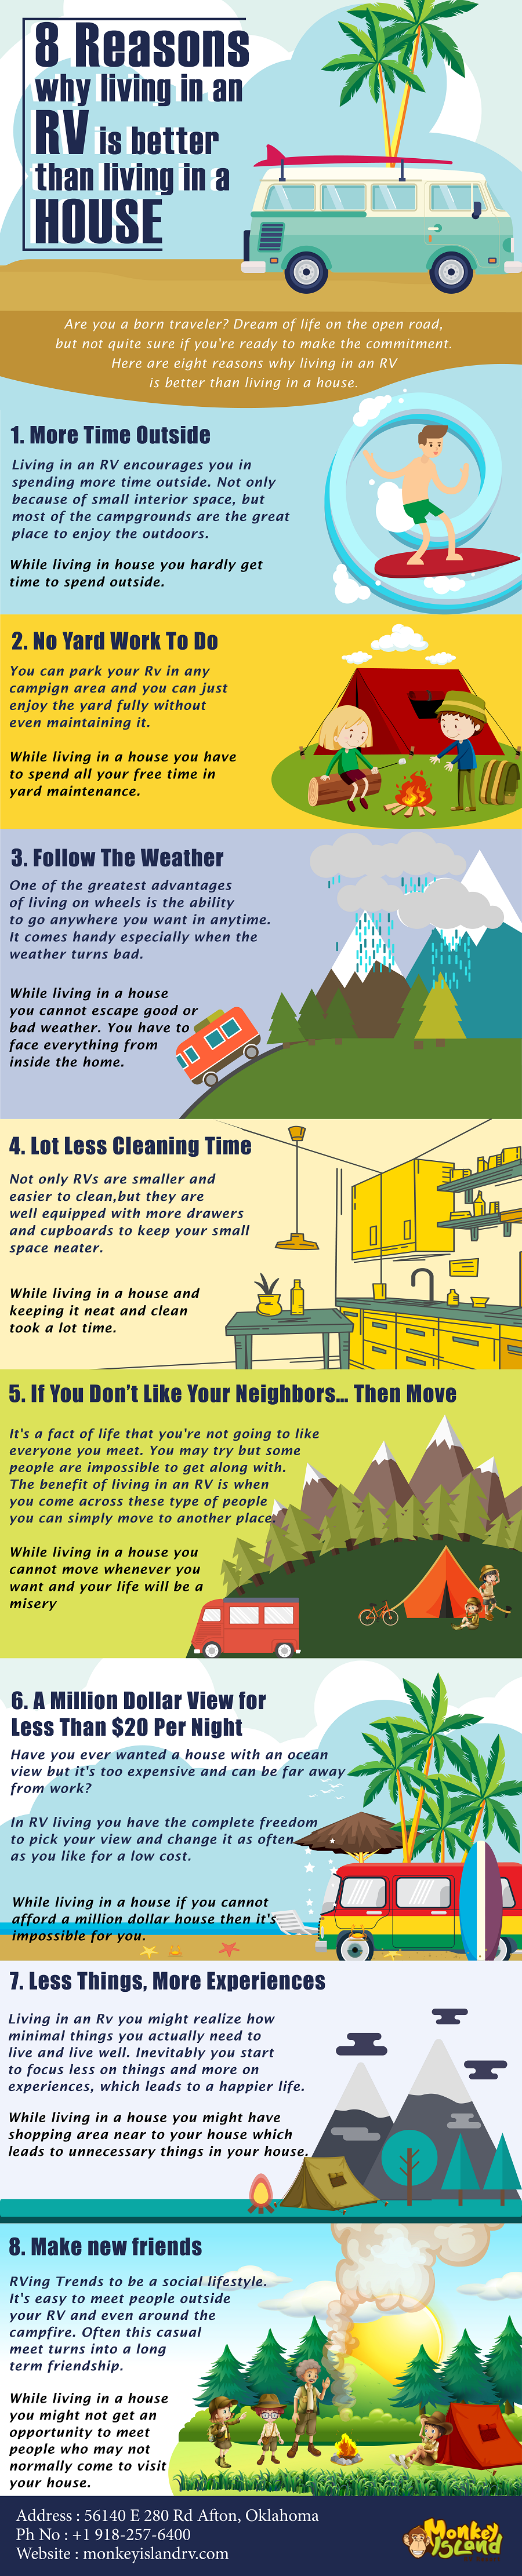 8-Reasons-Why-Living-In-An-RV-Is-Better-Than-Living-In-A-House.png